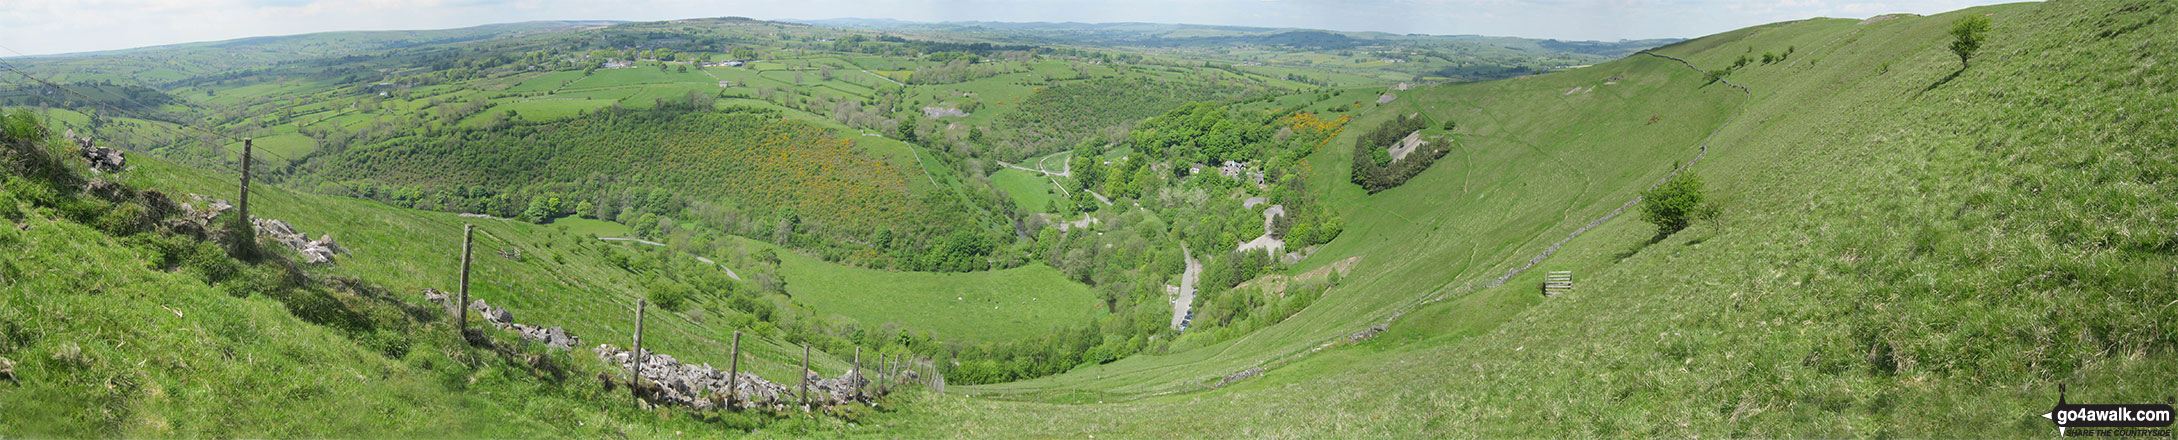 Panoramic view of The Manifold Valley and the Manifold Way from Ecton Hill